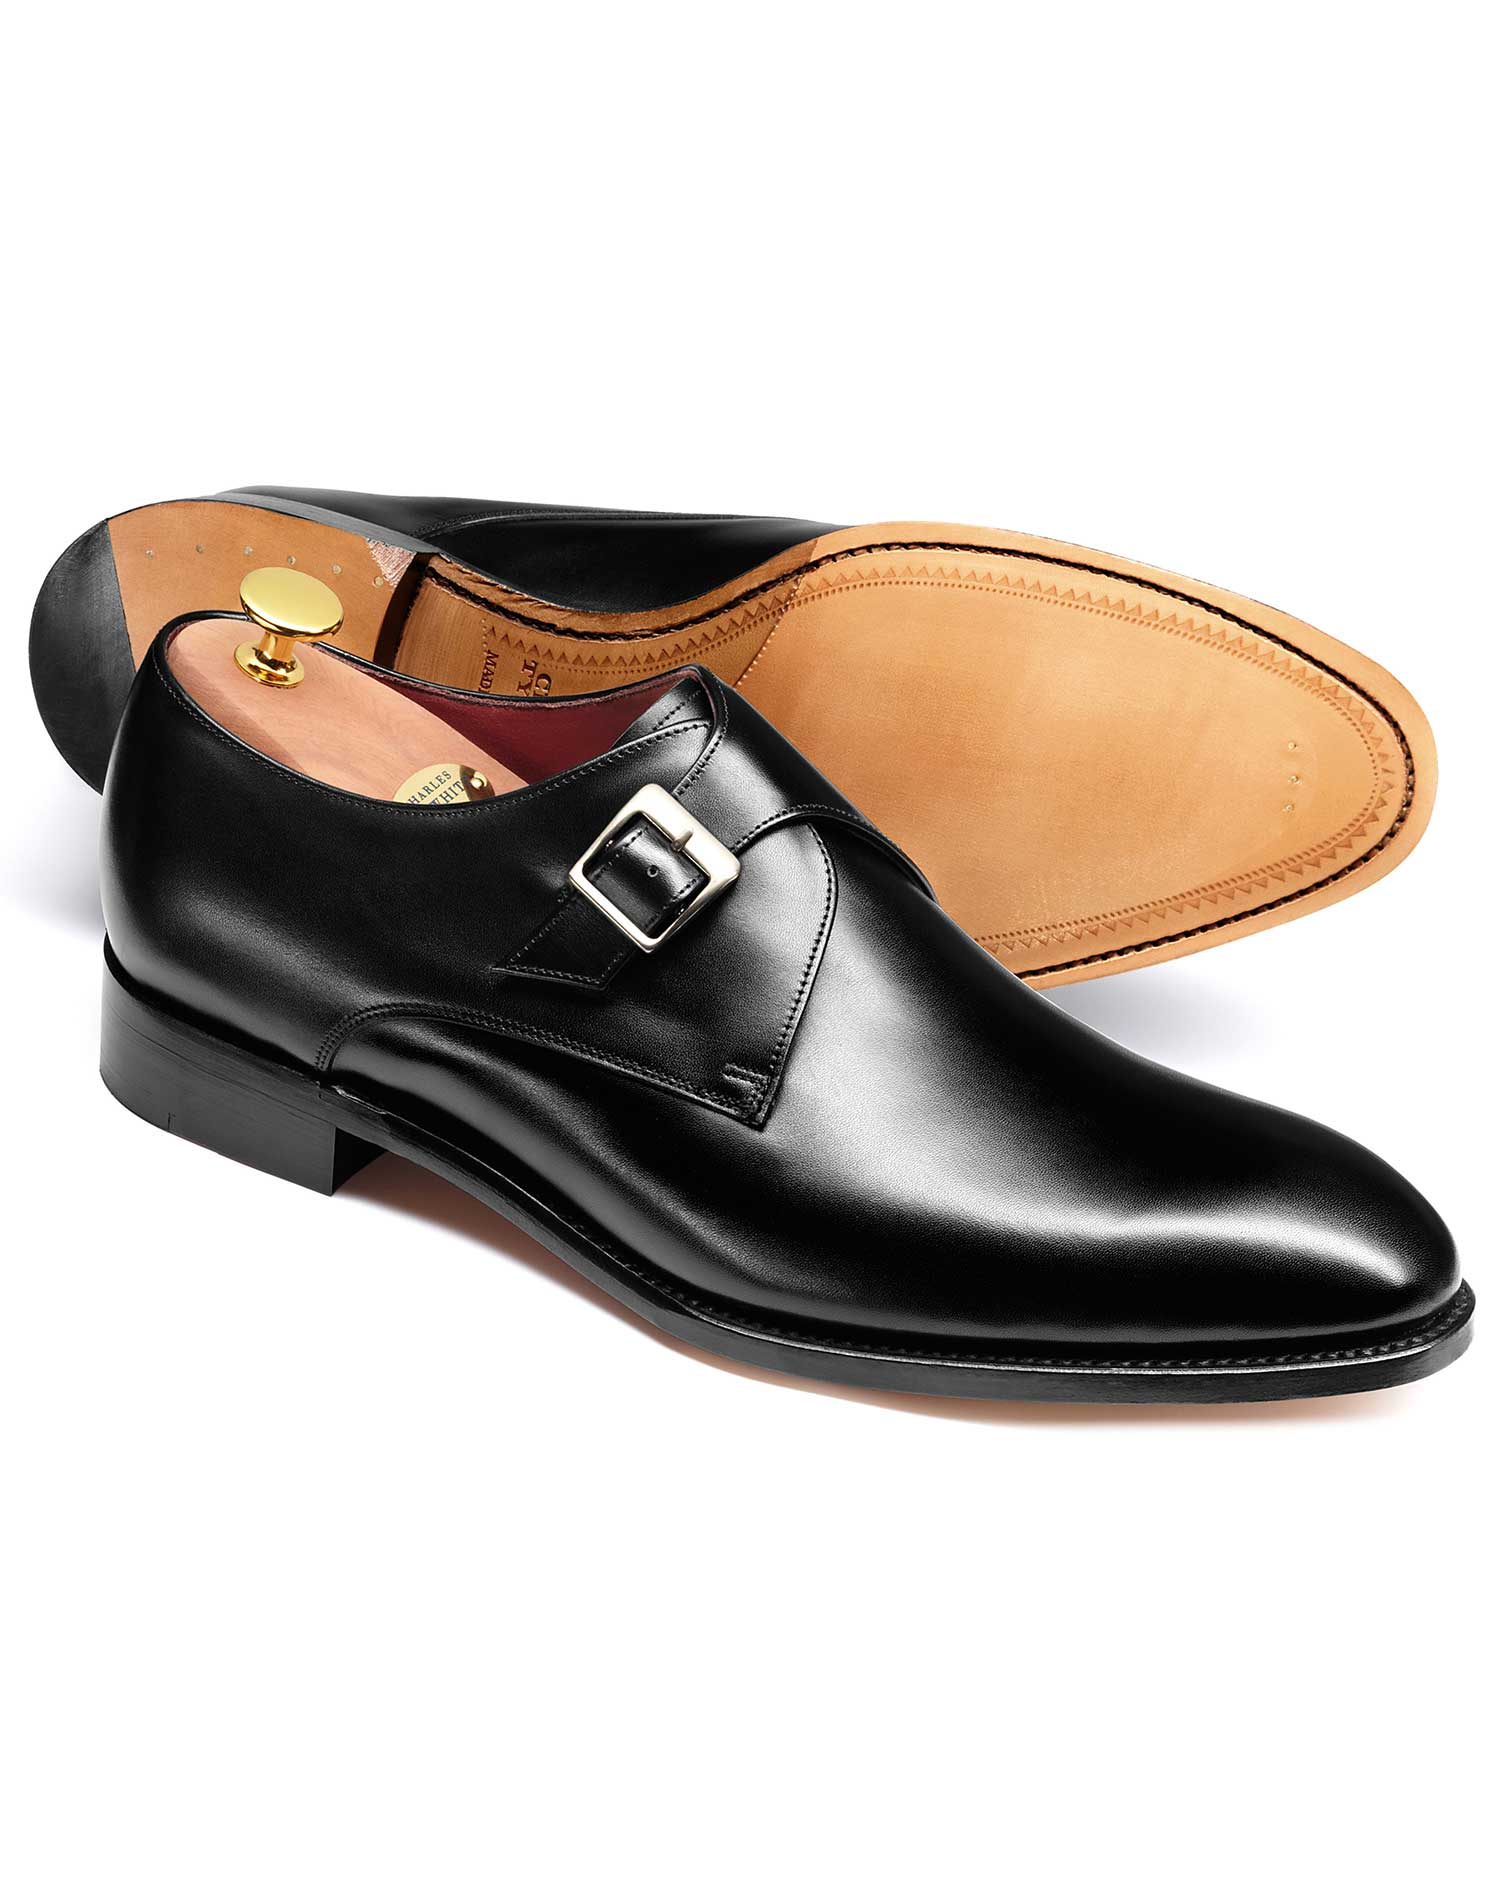 Black Wilcove Calf Leather Monk Shoes Size 8.5 W by Charles Tyrwhitt